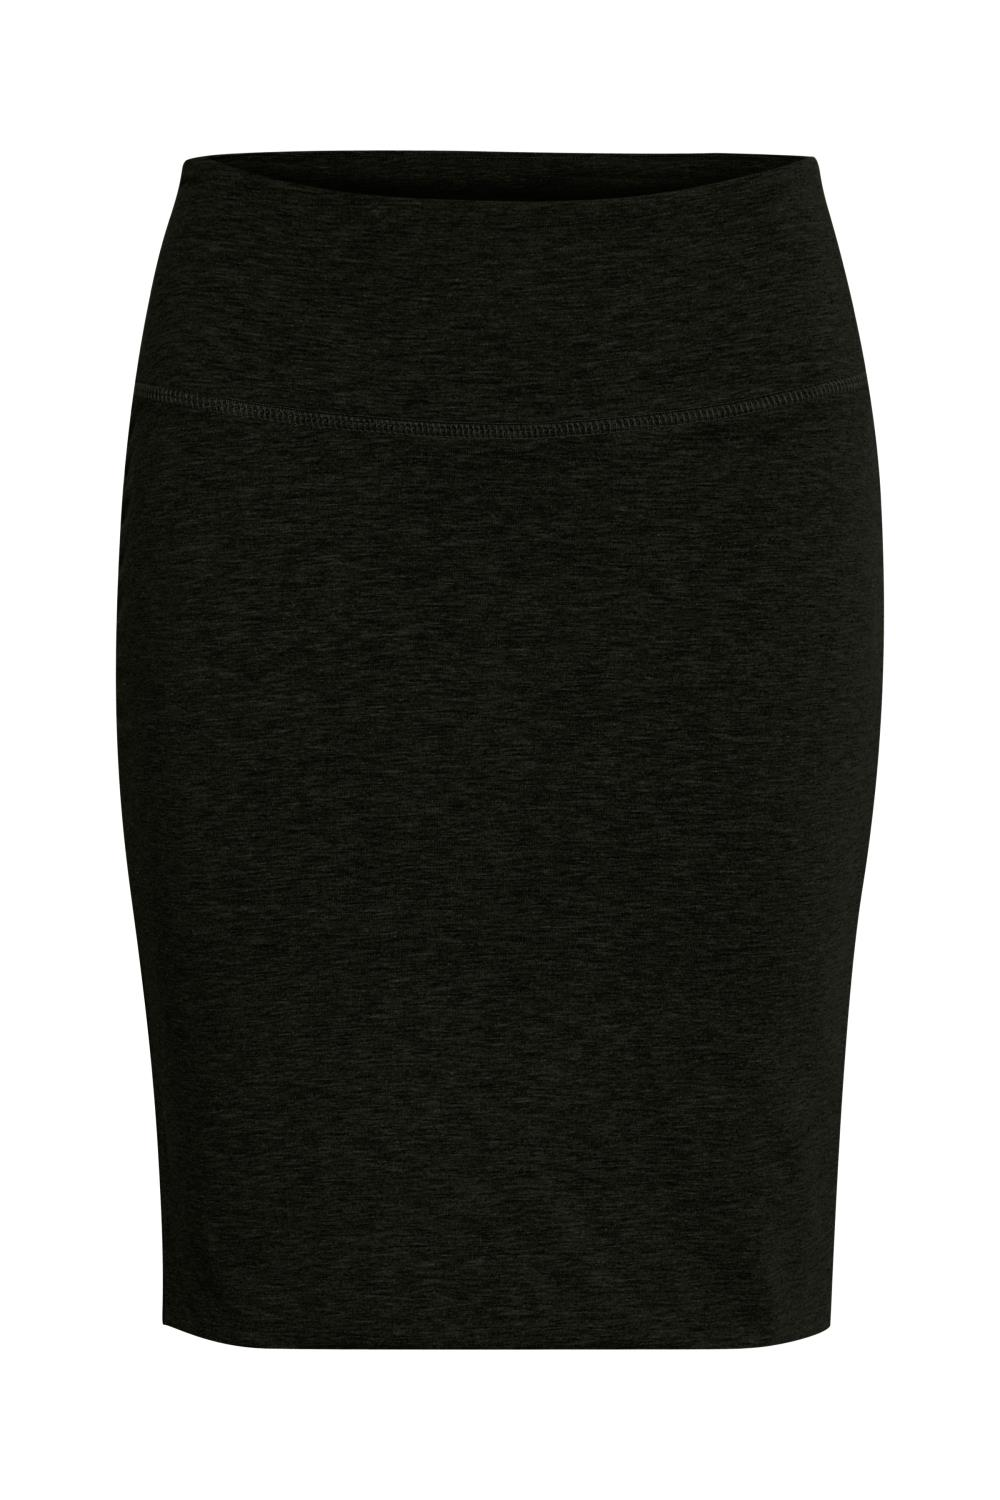 Kaffe Penny Skirt, Black deep